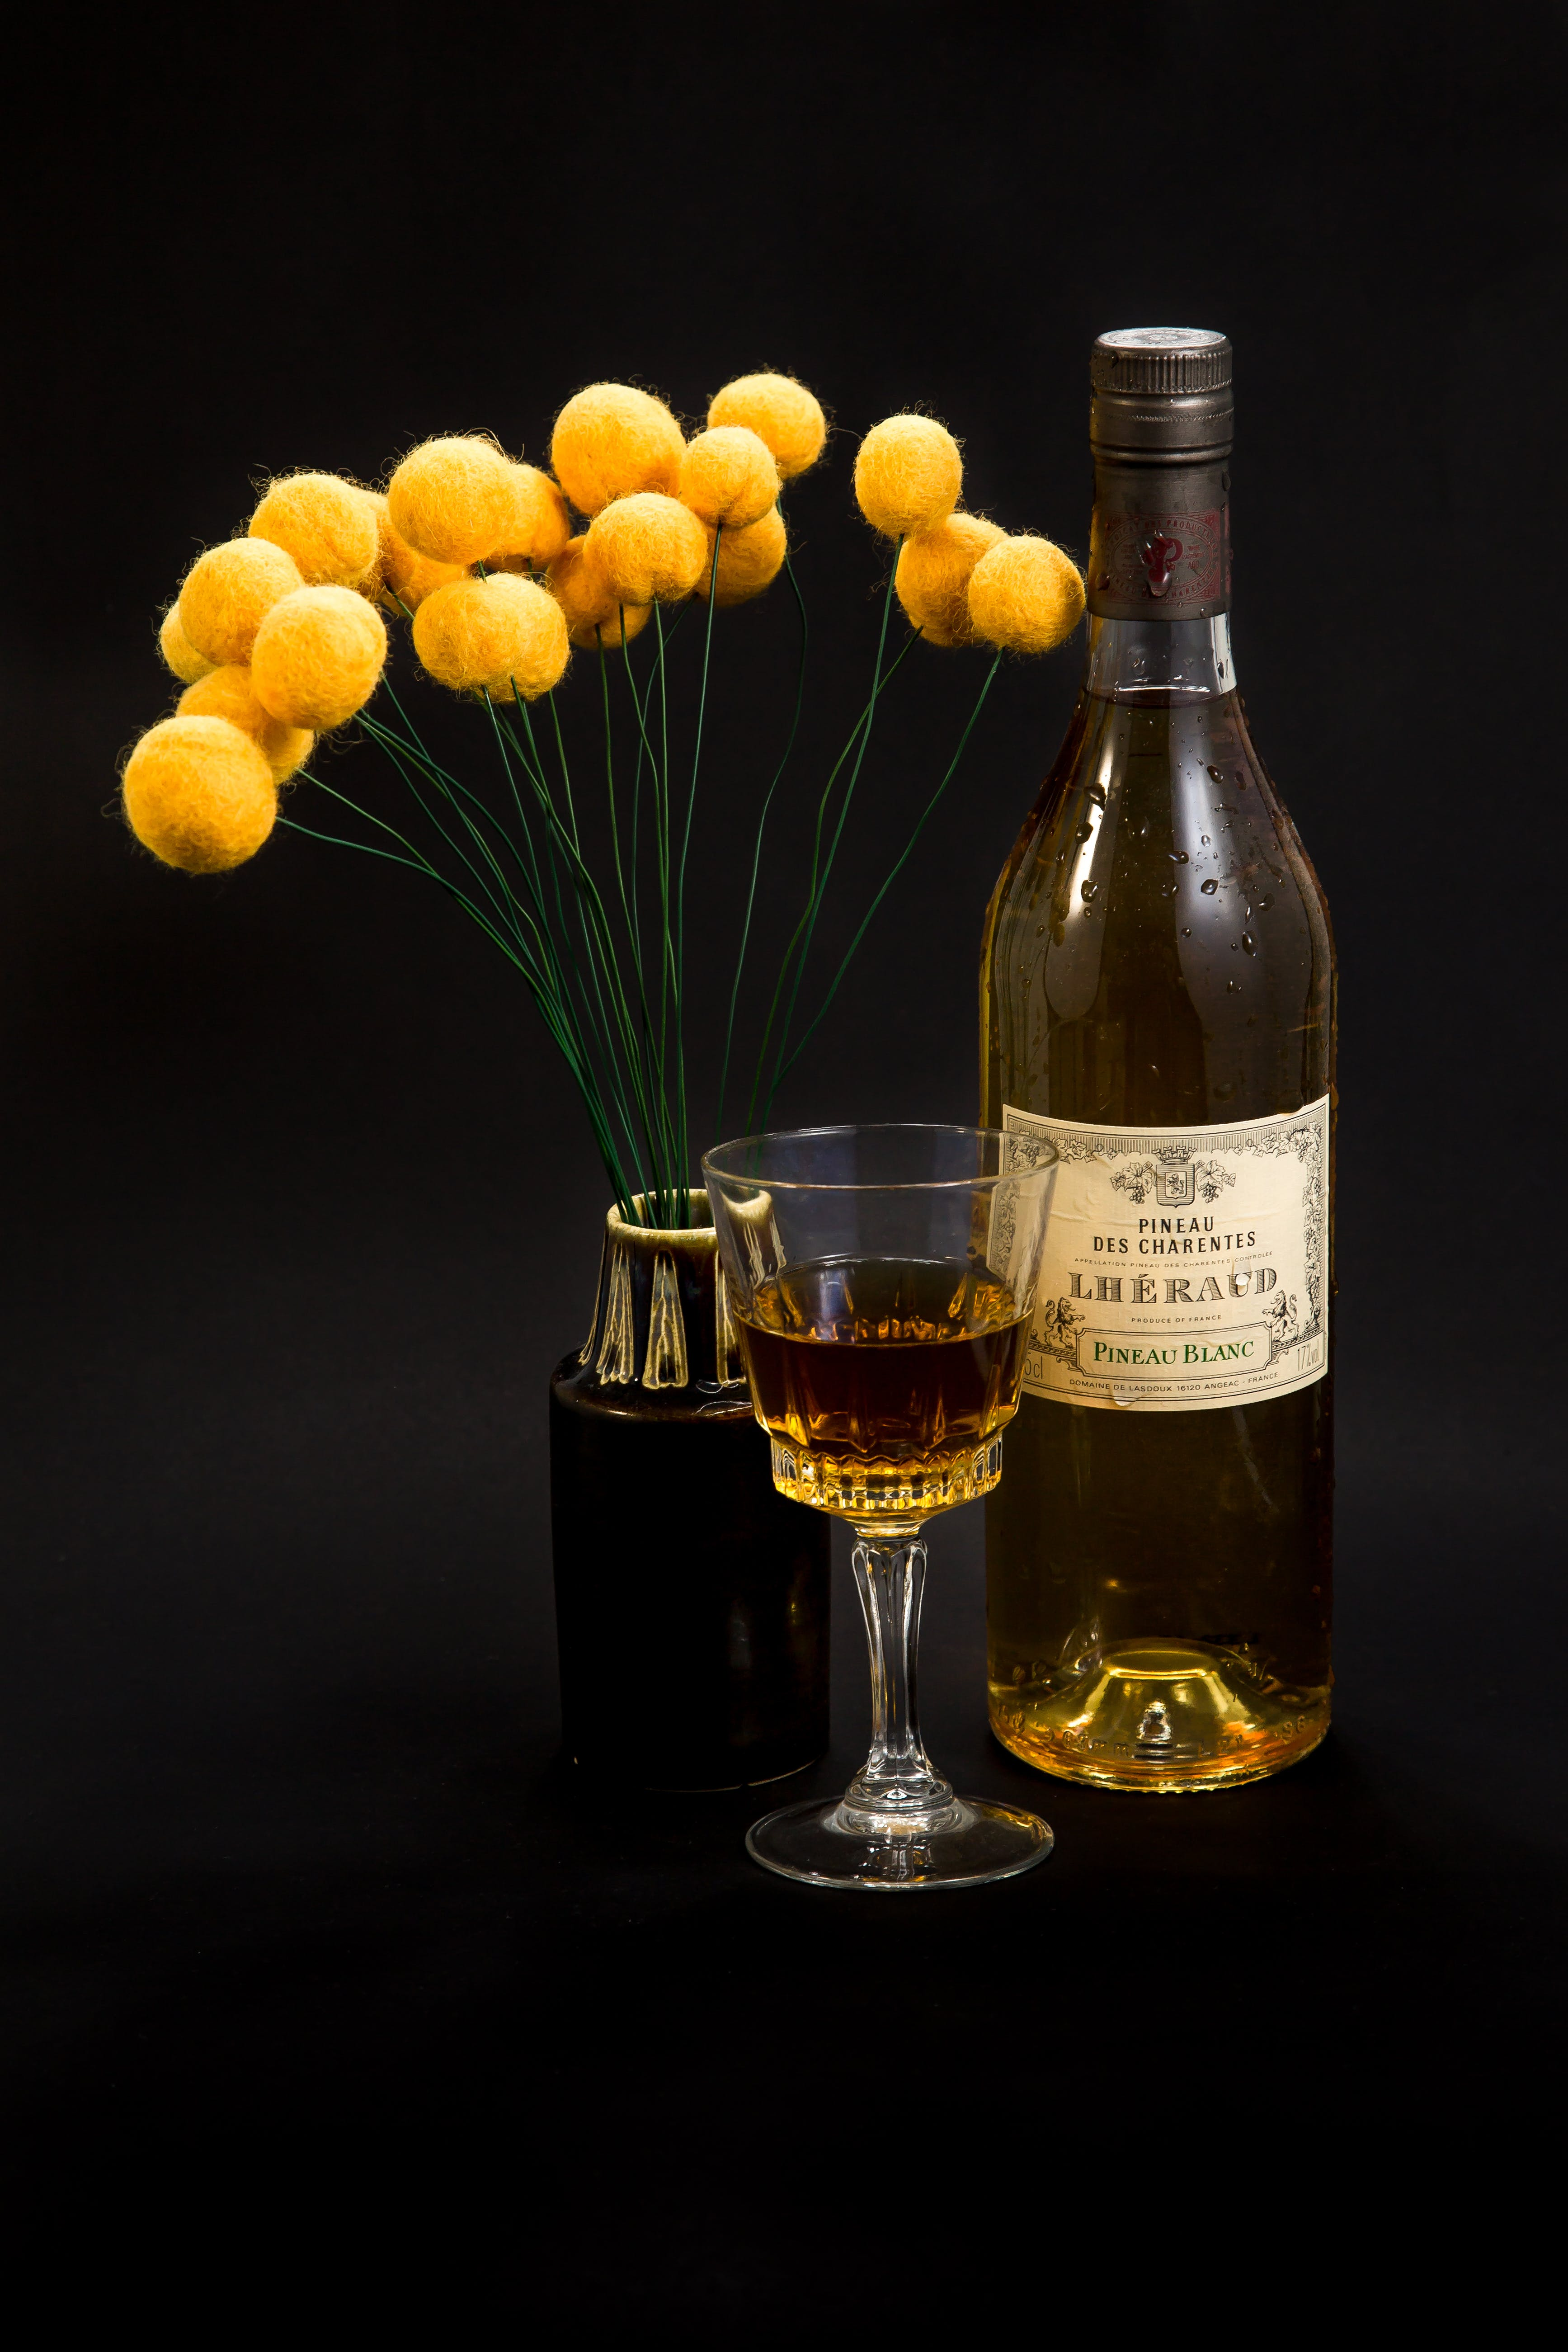 Free stock photo of bottle, french wine, glass, pineau